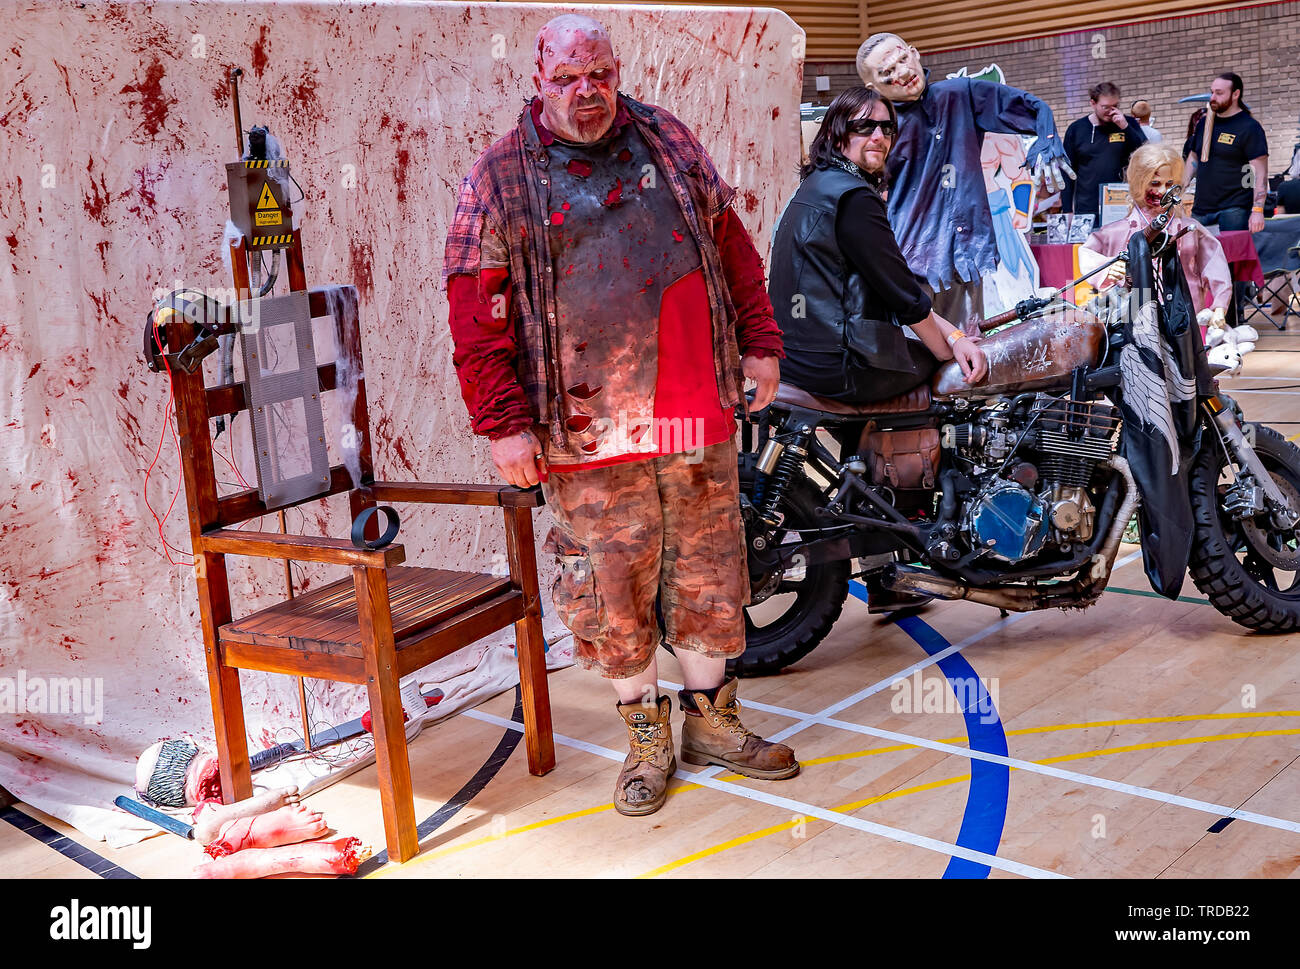 Great Yarmouth Comicon 2019 – A man dressed up as a zombie at the Comicon event in the seaside town of Great Yarmouth, Norfolk - Stock Image